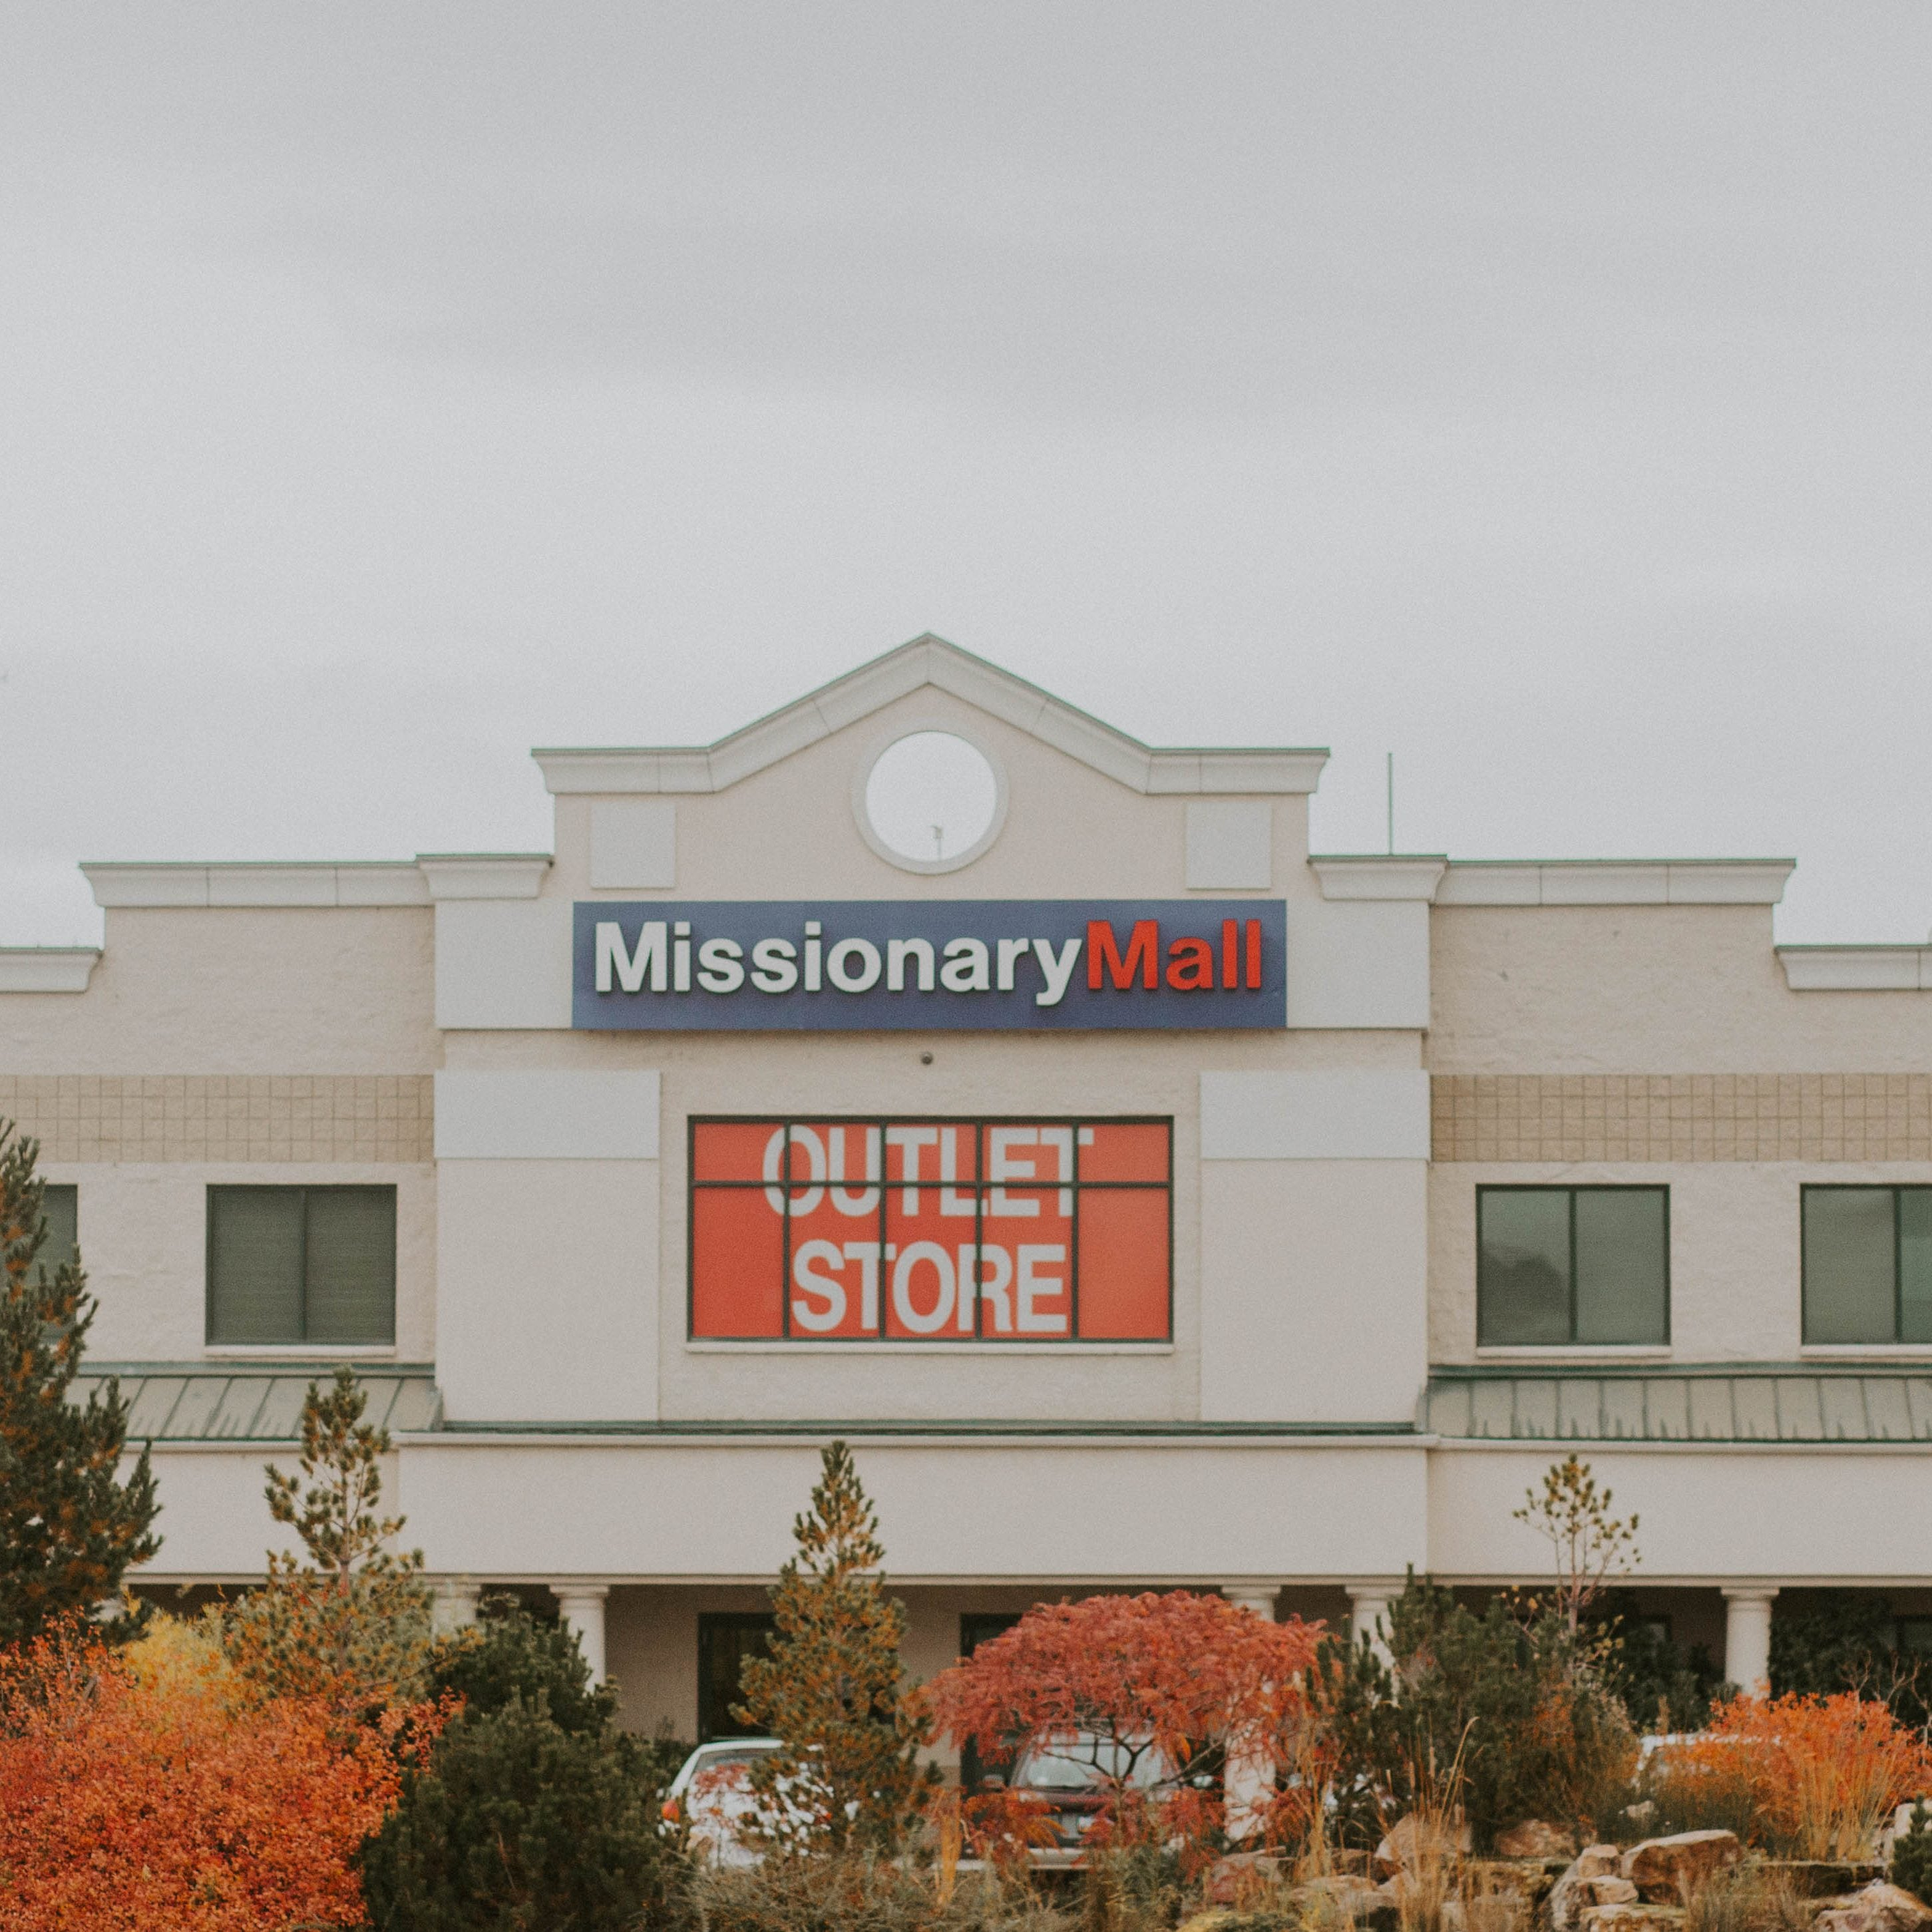 MissionaryMall Outlet Storefront